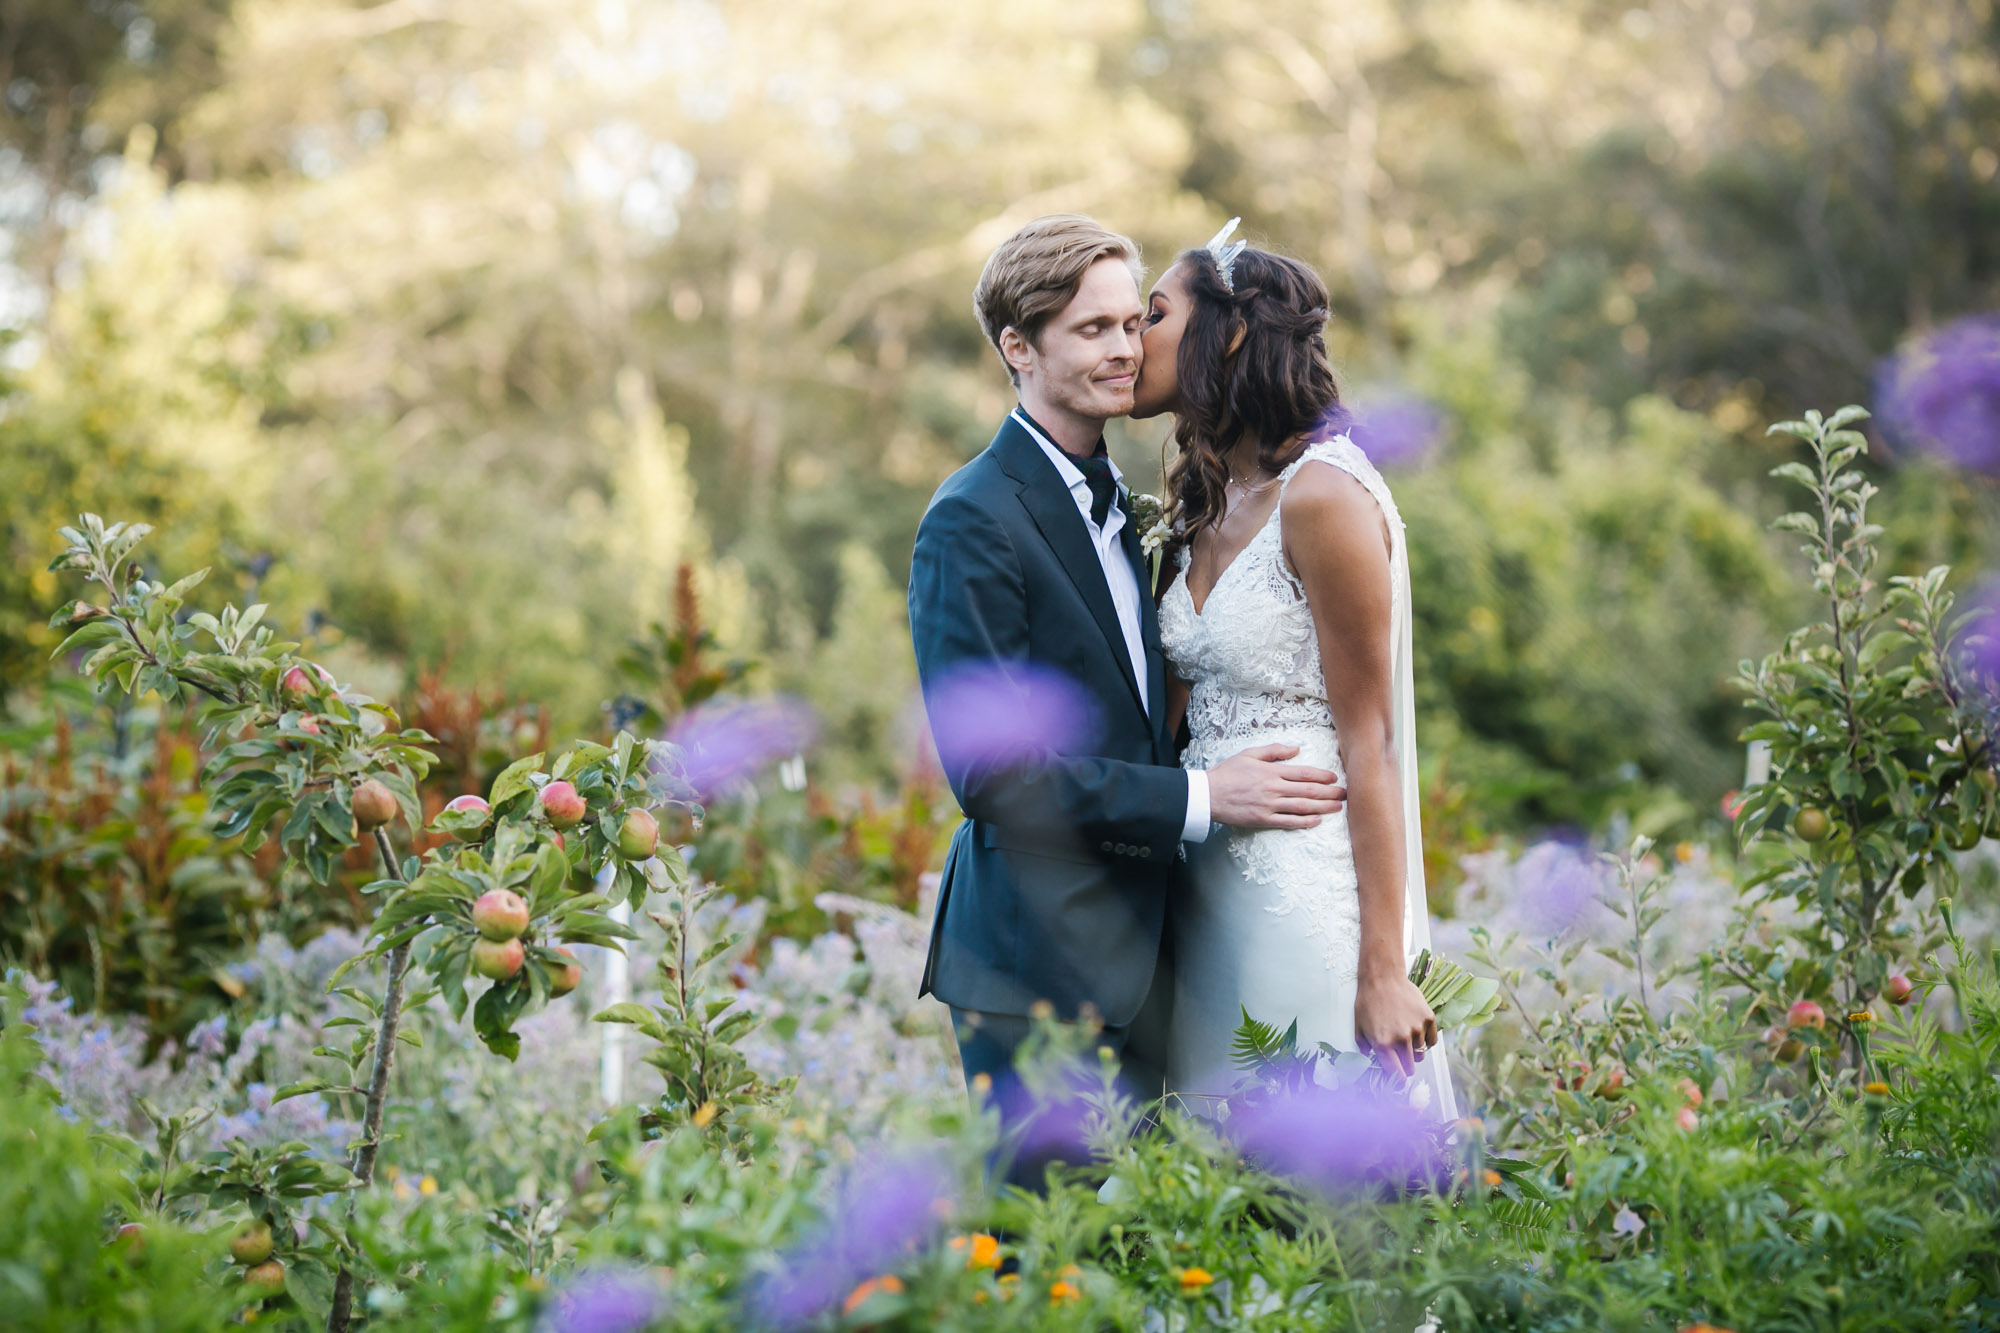 Bride in crystal crowns kisses her husband surrounded by flowers and apples